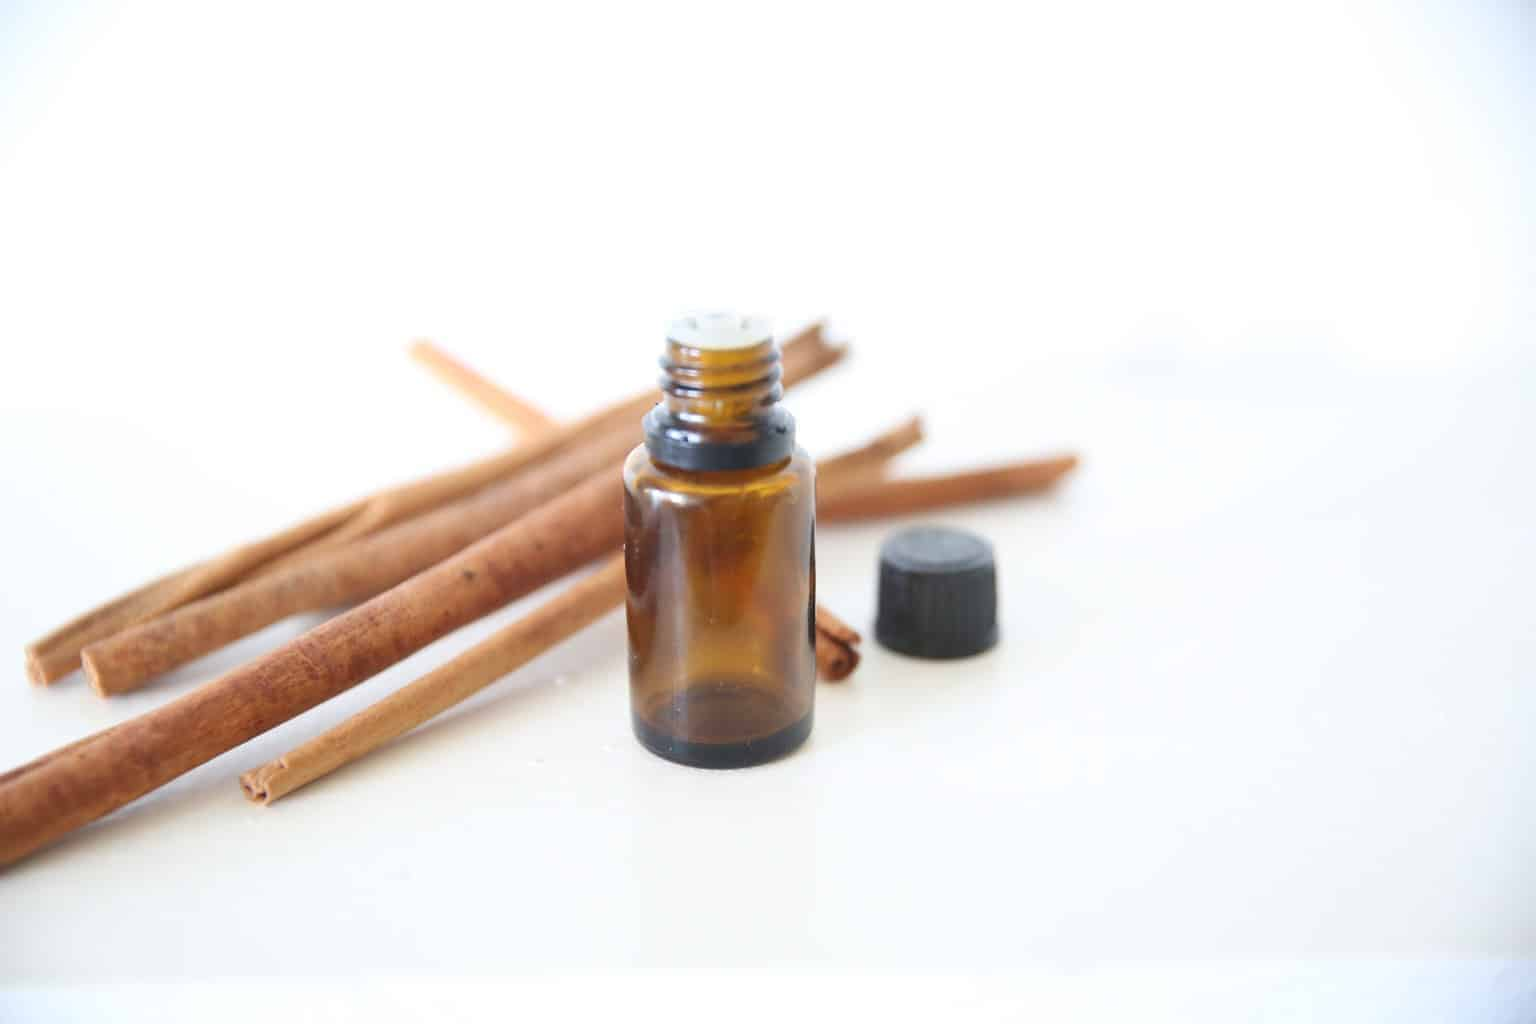 cinnamon essential oil bottle with cinnamon sticks on white marble